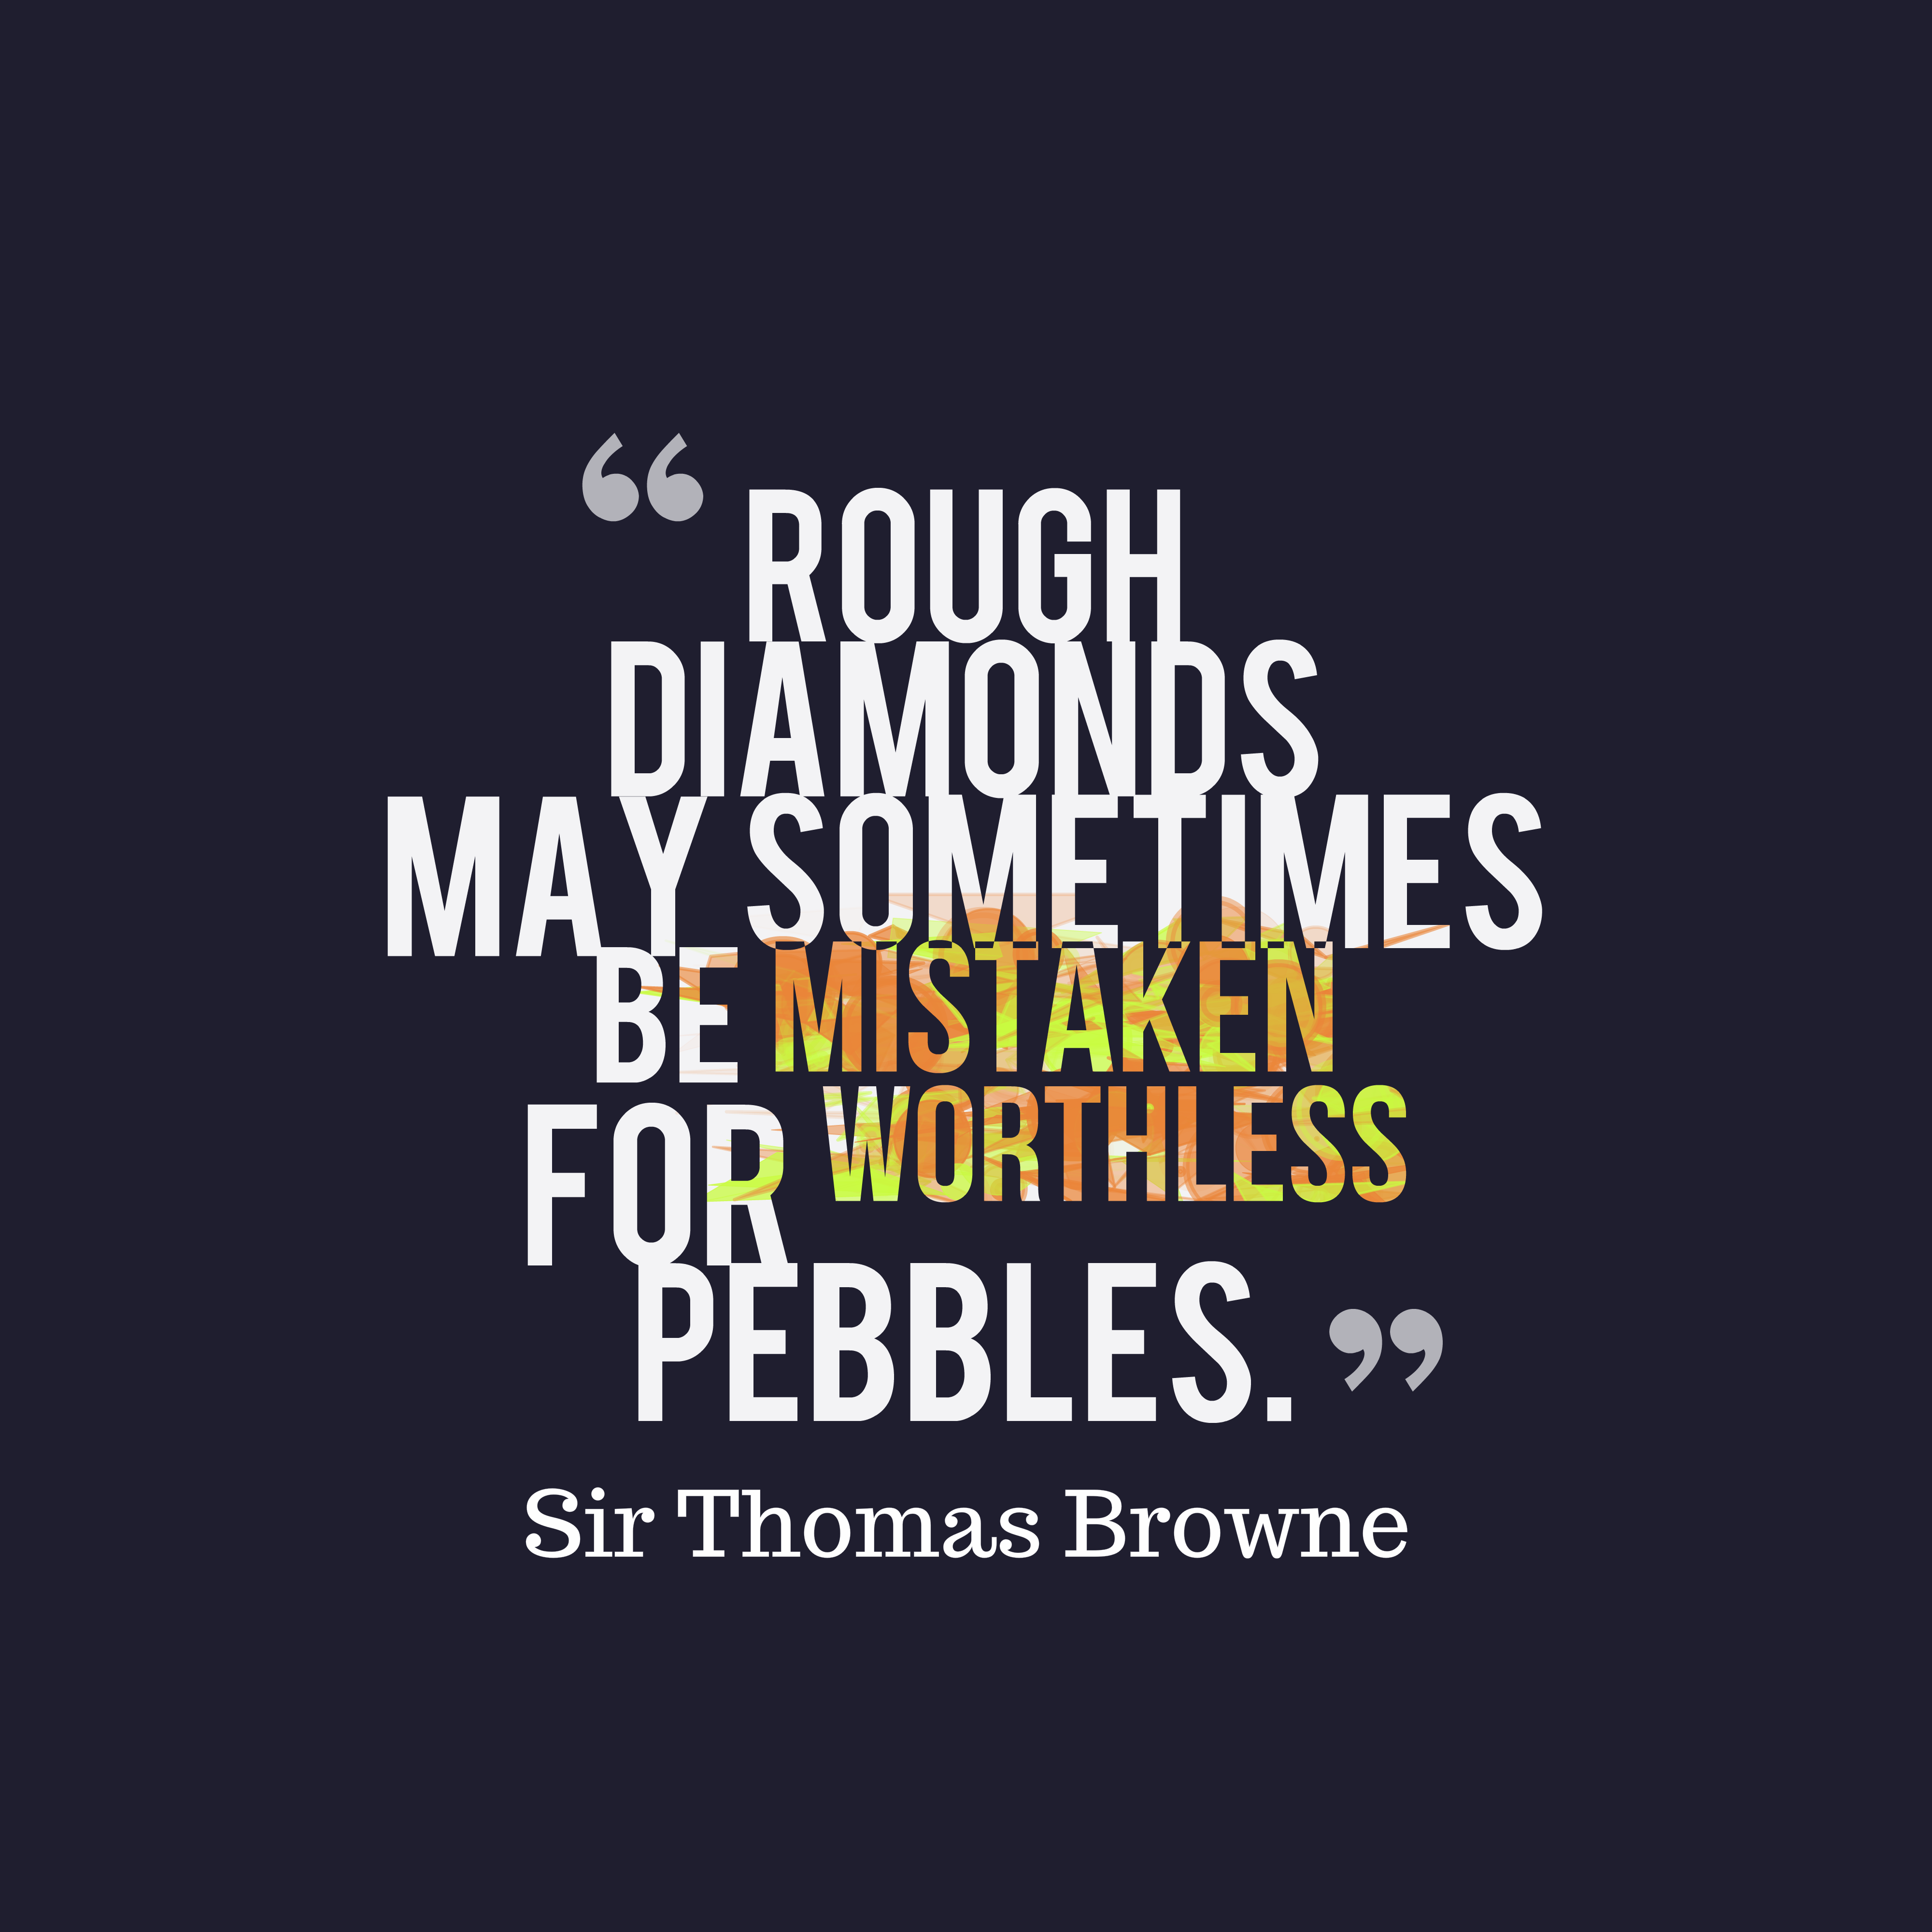 Quotes image of Rough diamonds may sometimes be mistaken for worthless pebbles.